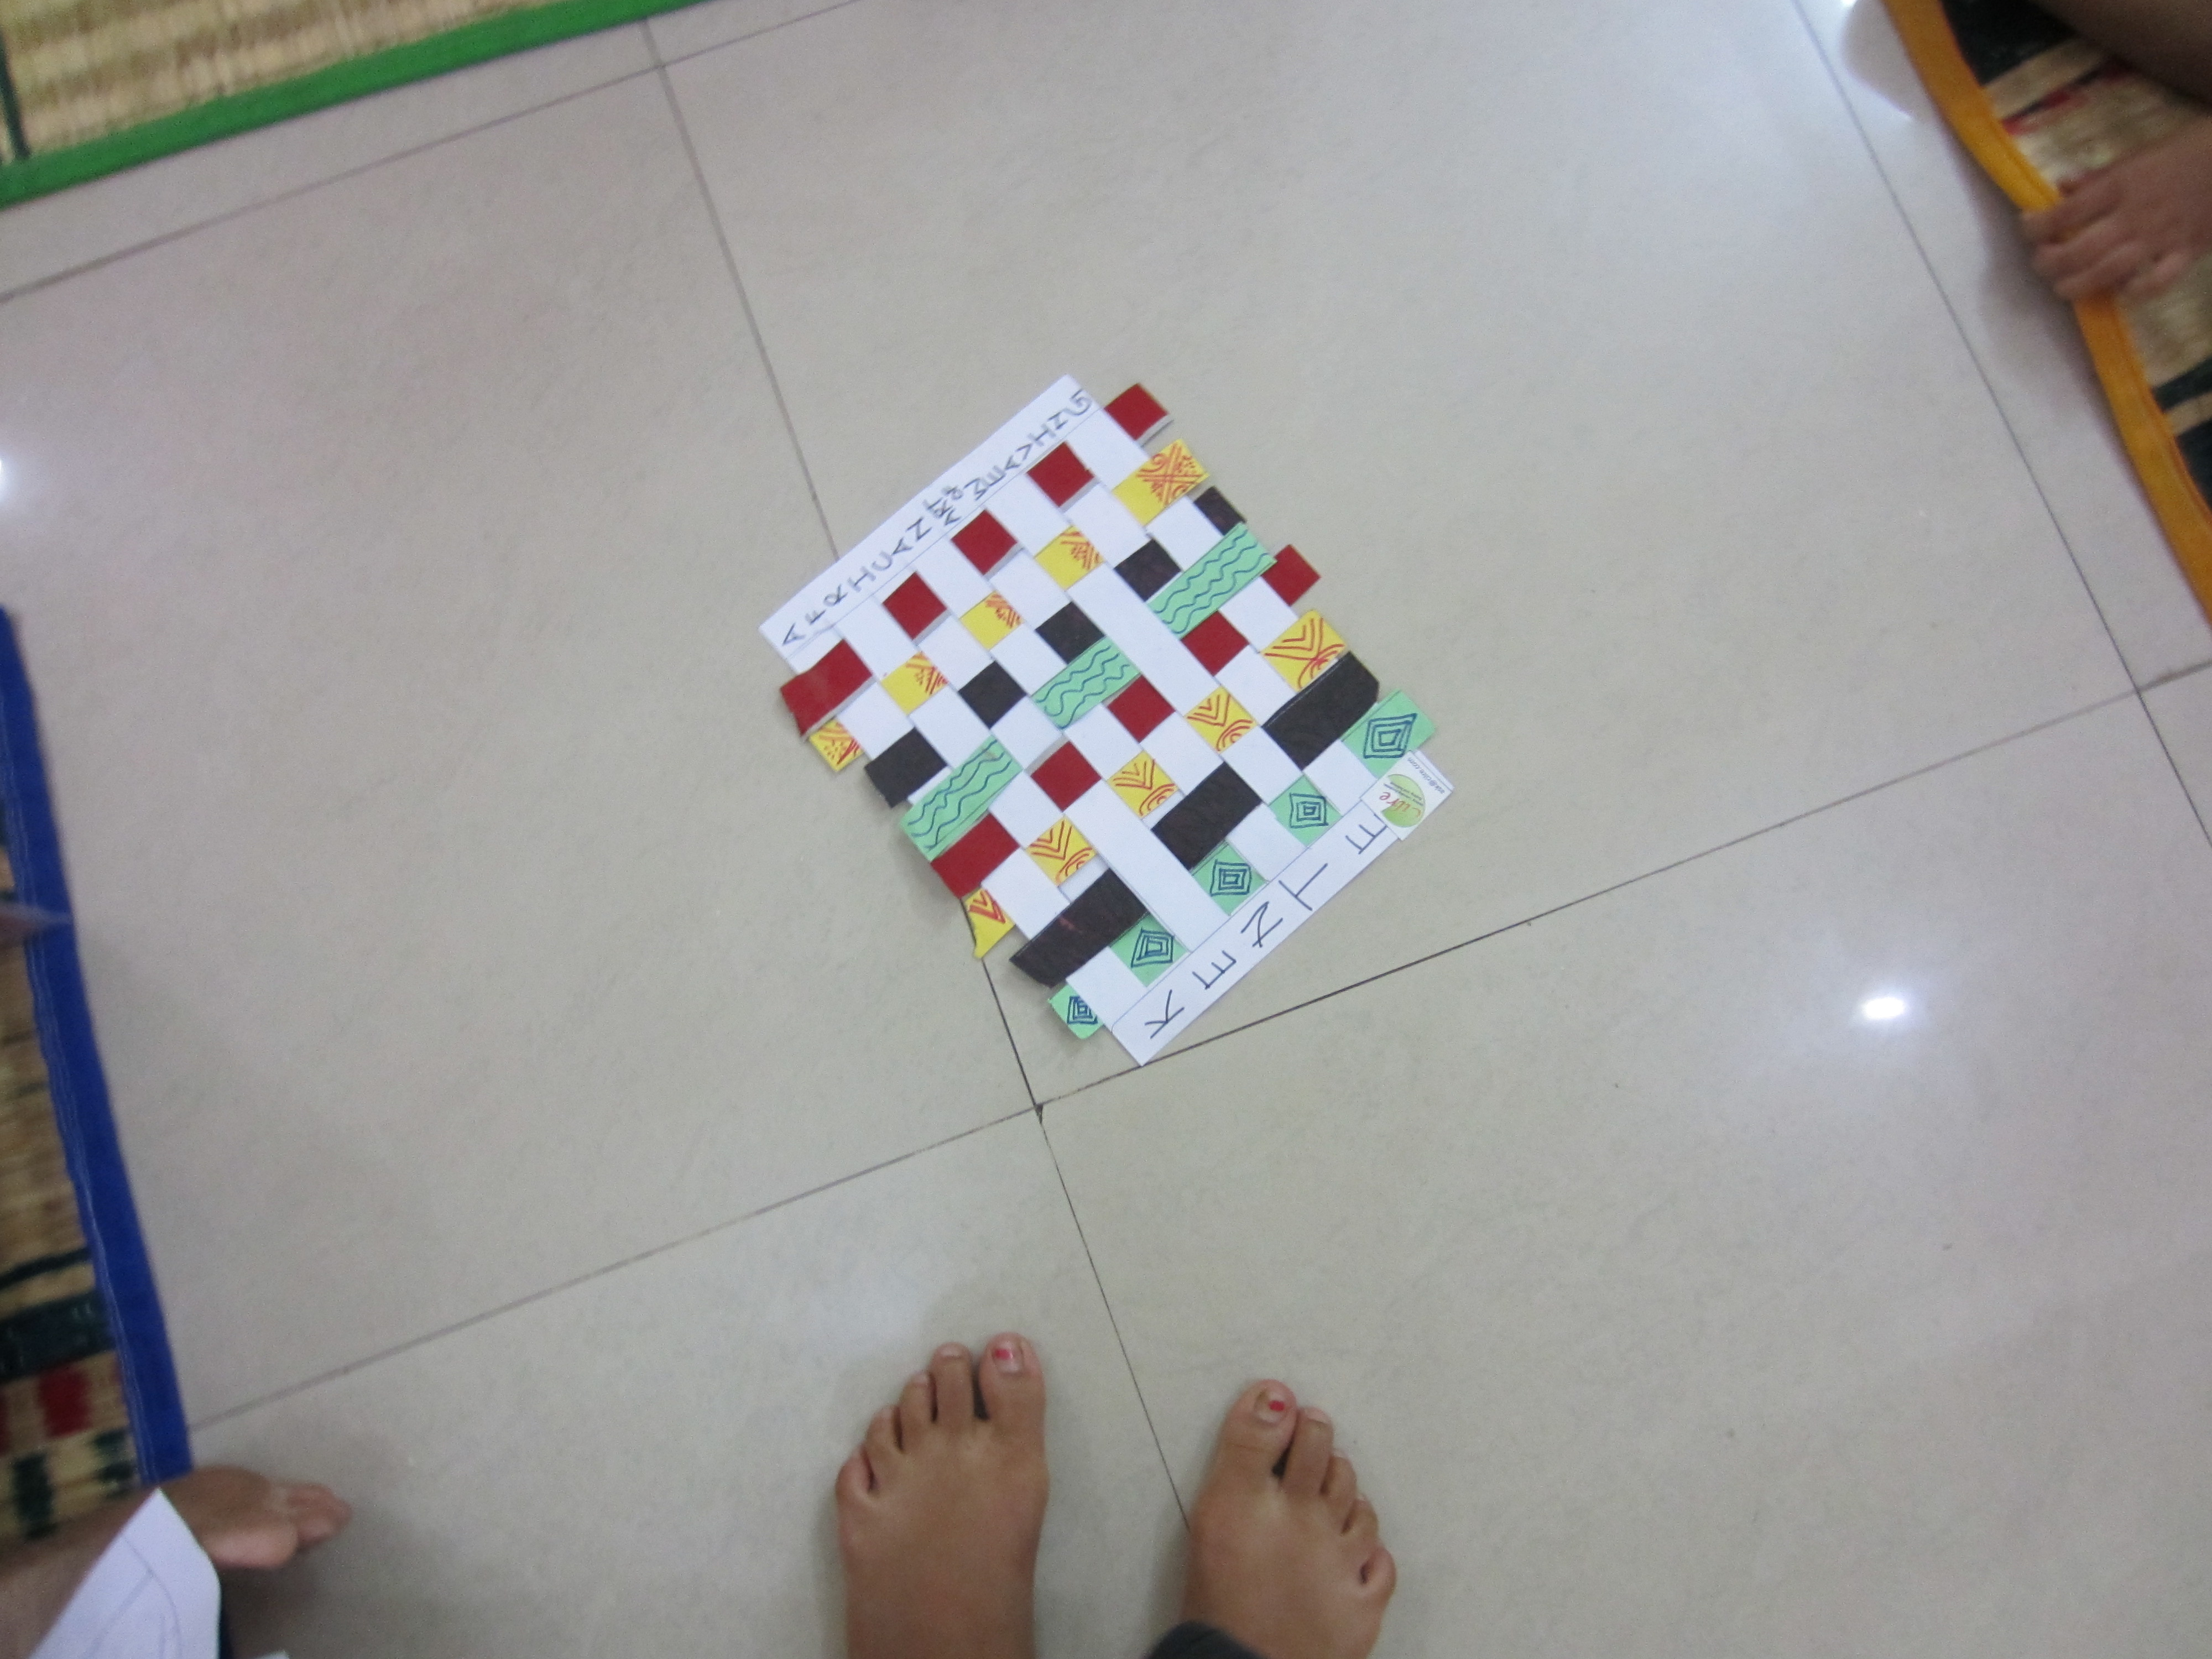 Game nail color workshop - The Children Got Exposure To Different Cultures And Games Of Different Countries From Hopscotch To Russian Dolls Carcossonne Game From Germany Was